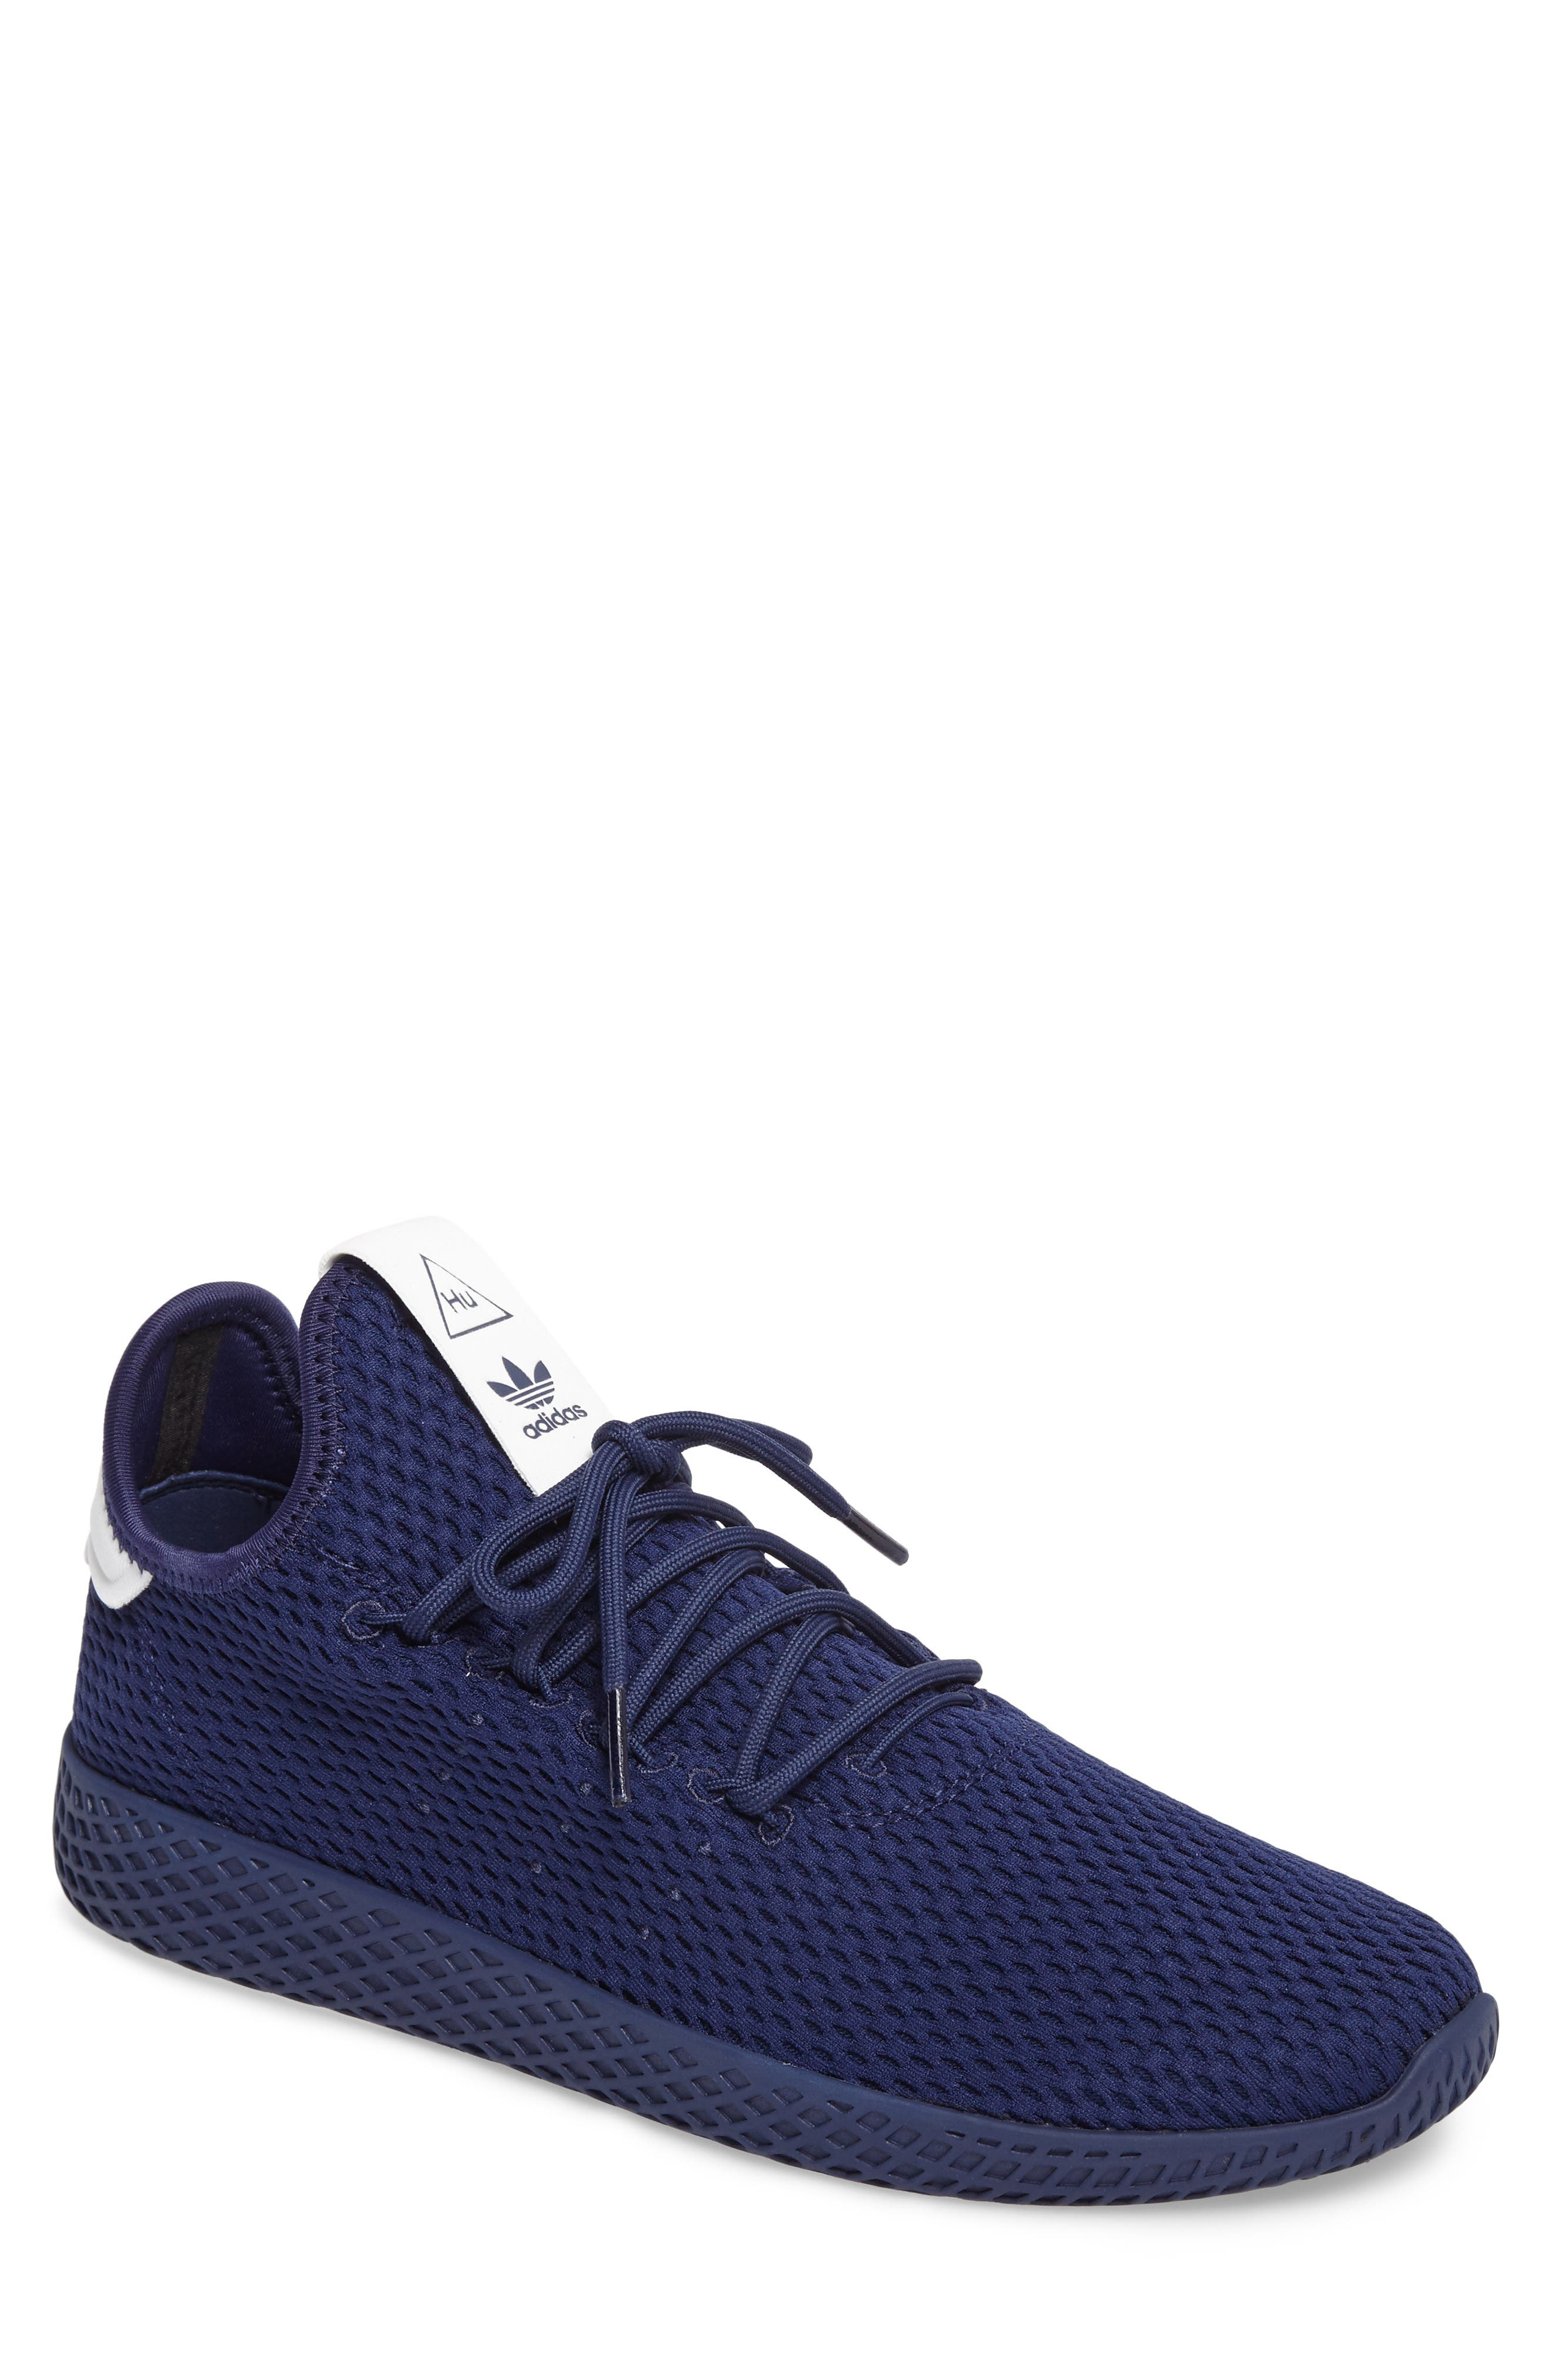 Alternate Image 1 Selected - adidas Originals x Pharrell Williams Mesh Sneaker (Men)